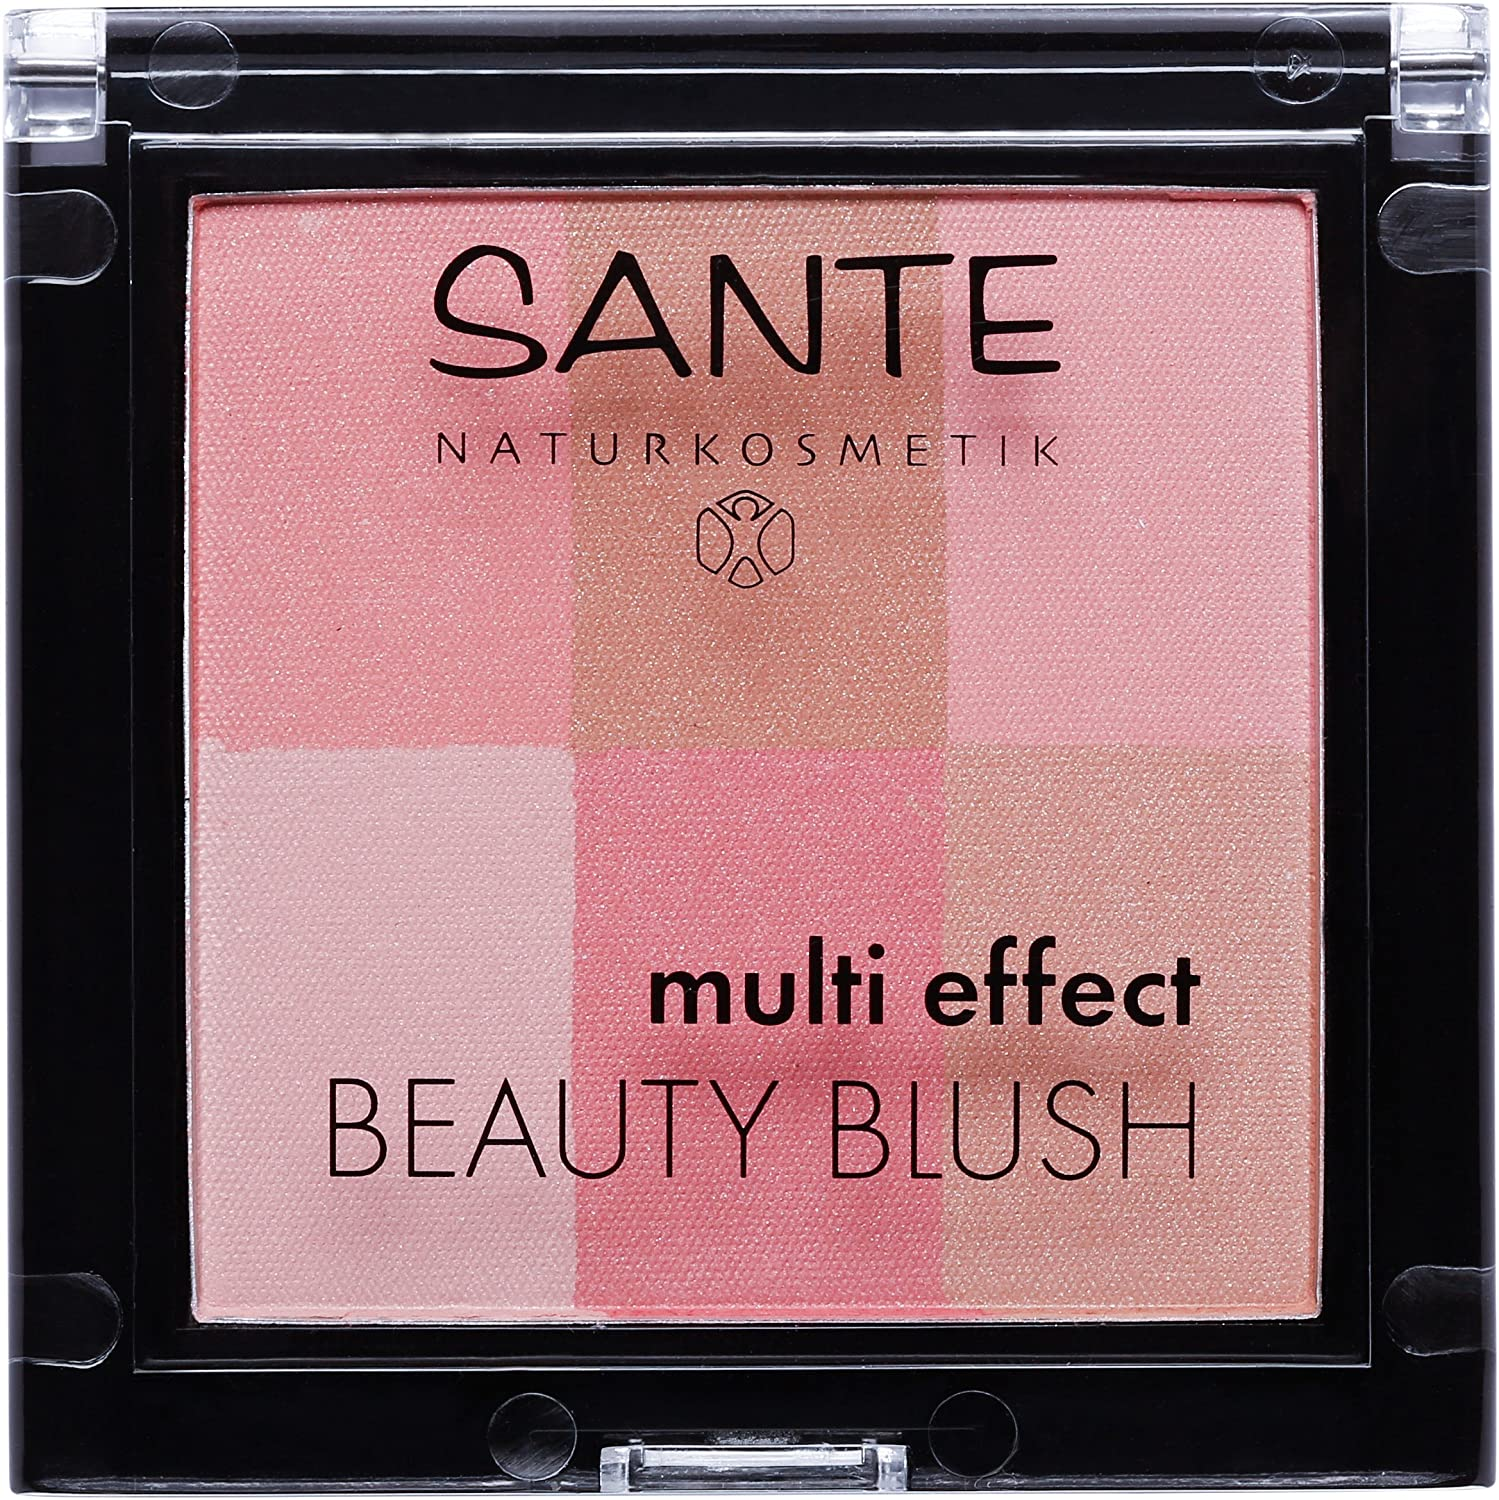 COLORETE MULTI EFFECT 01 CORAL BIO SANTE 8 gr 43280